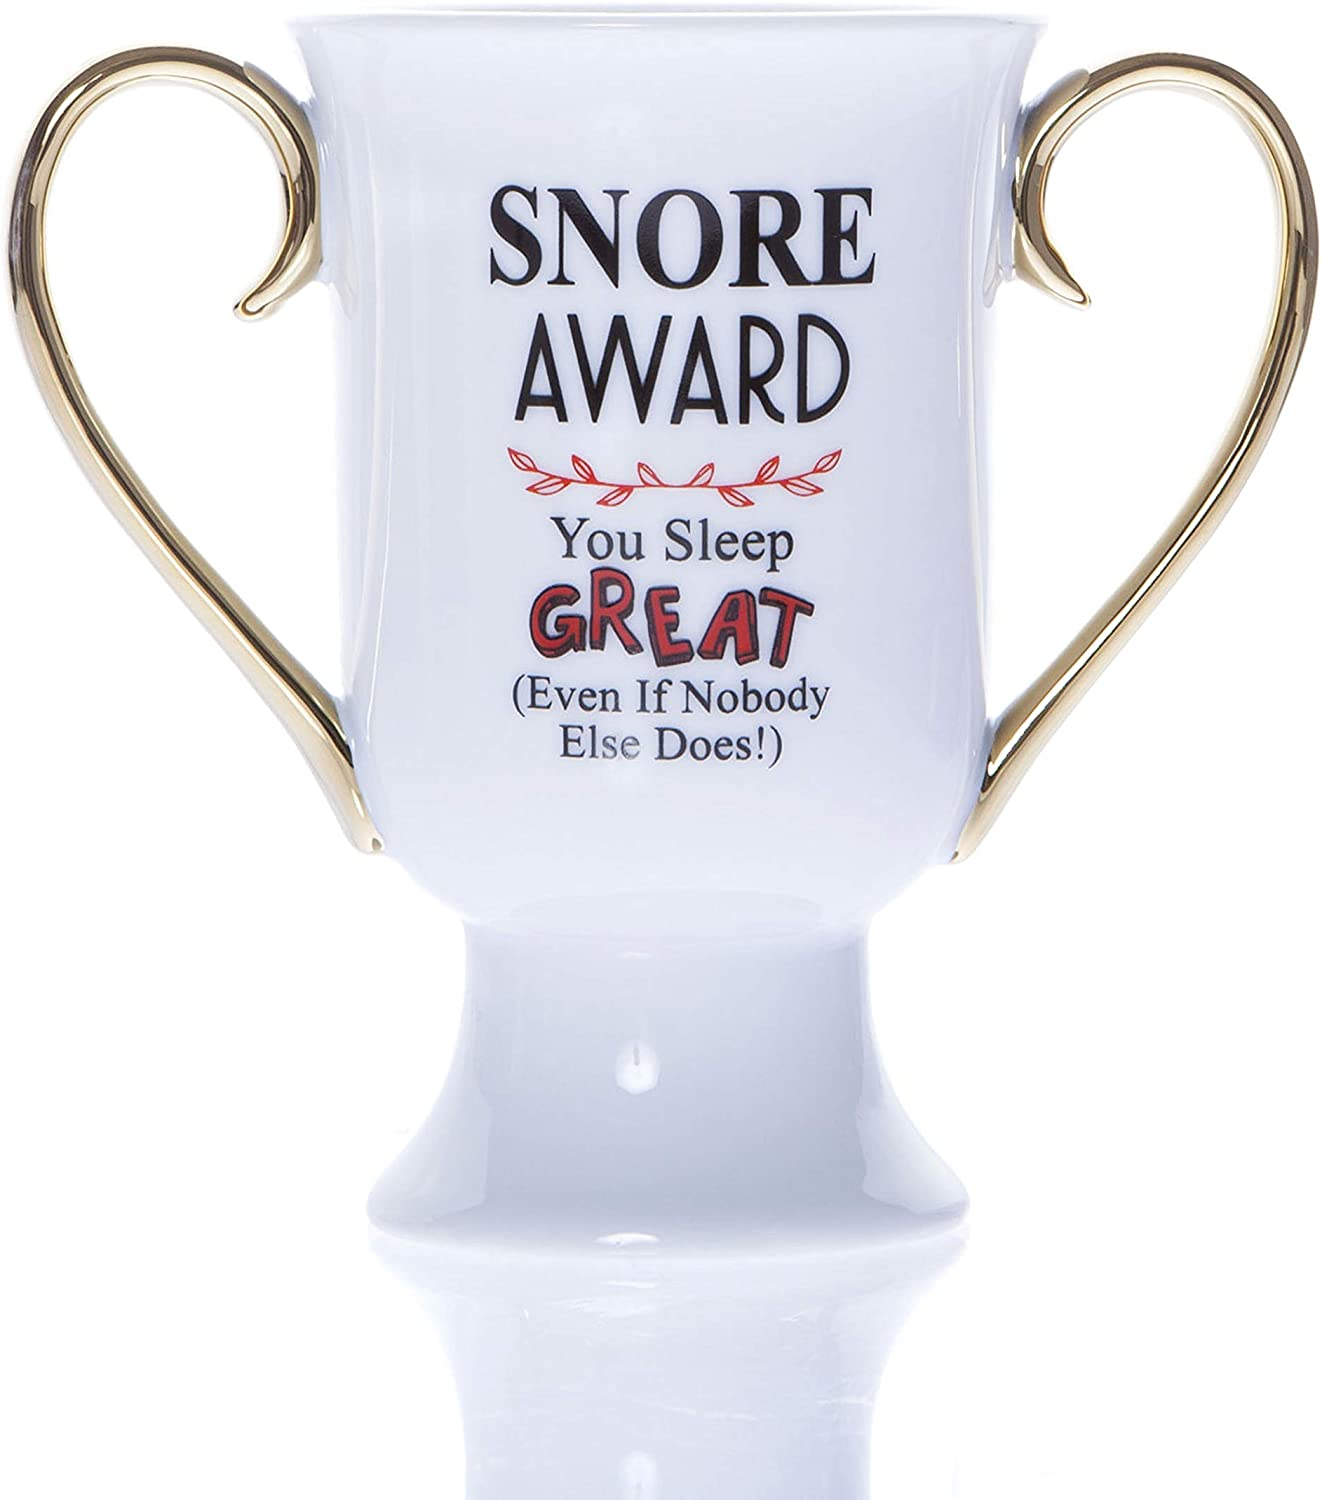 nore Award Gift for Him